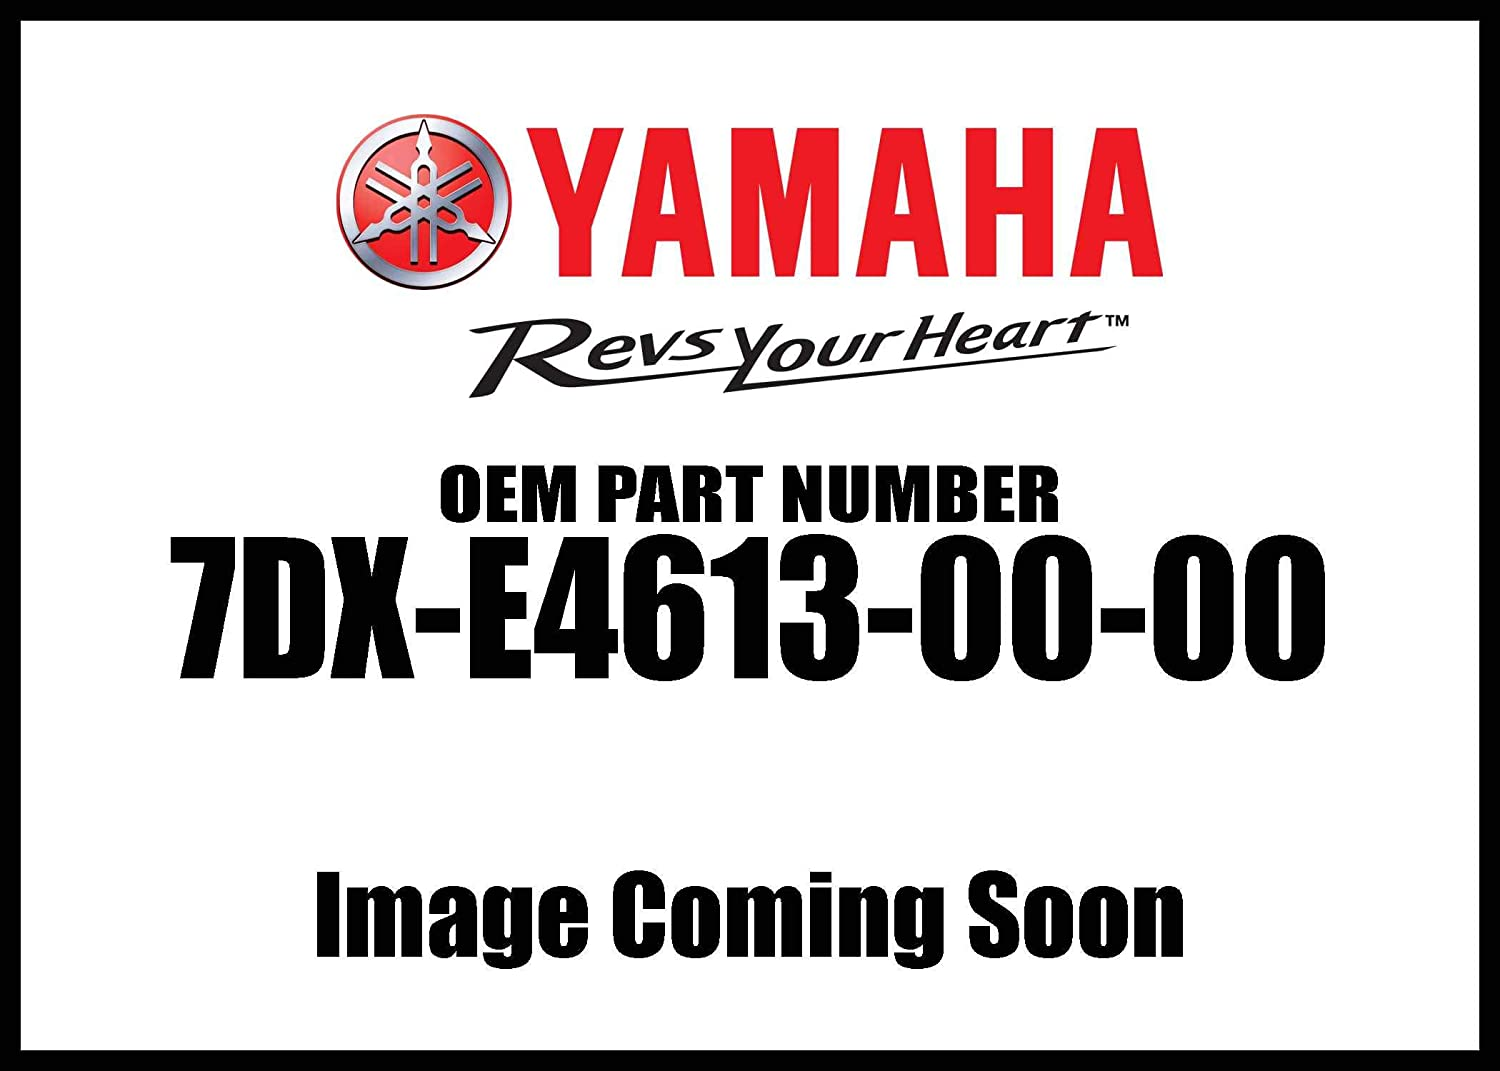 Exhaust Pipe; 7DXE46130000 Made by Yamaha Yamaha 7DX-E4613-00-00 Gasket